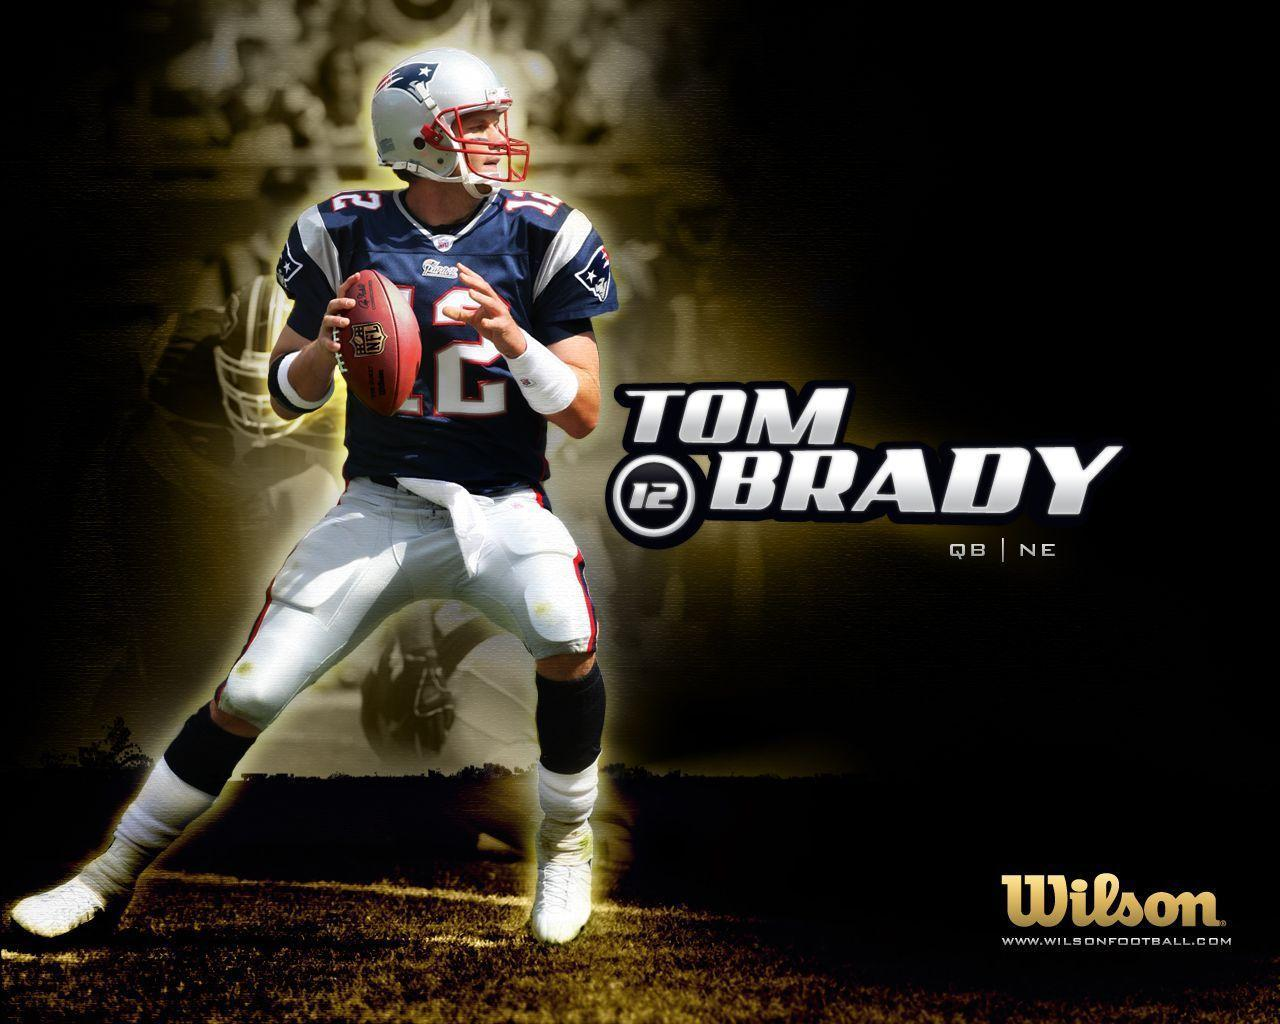 Tom Brady Wallpapers Free HD - Wallpaper Flix